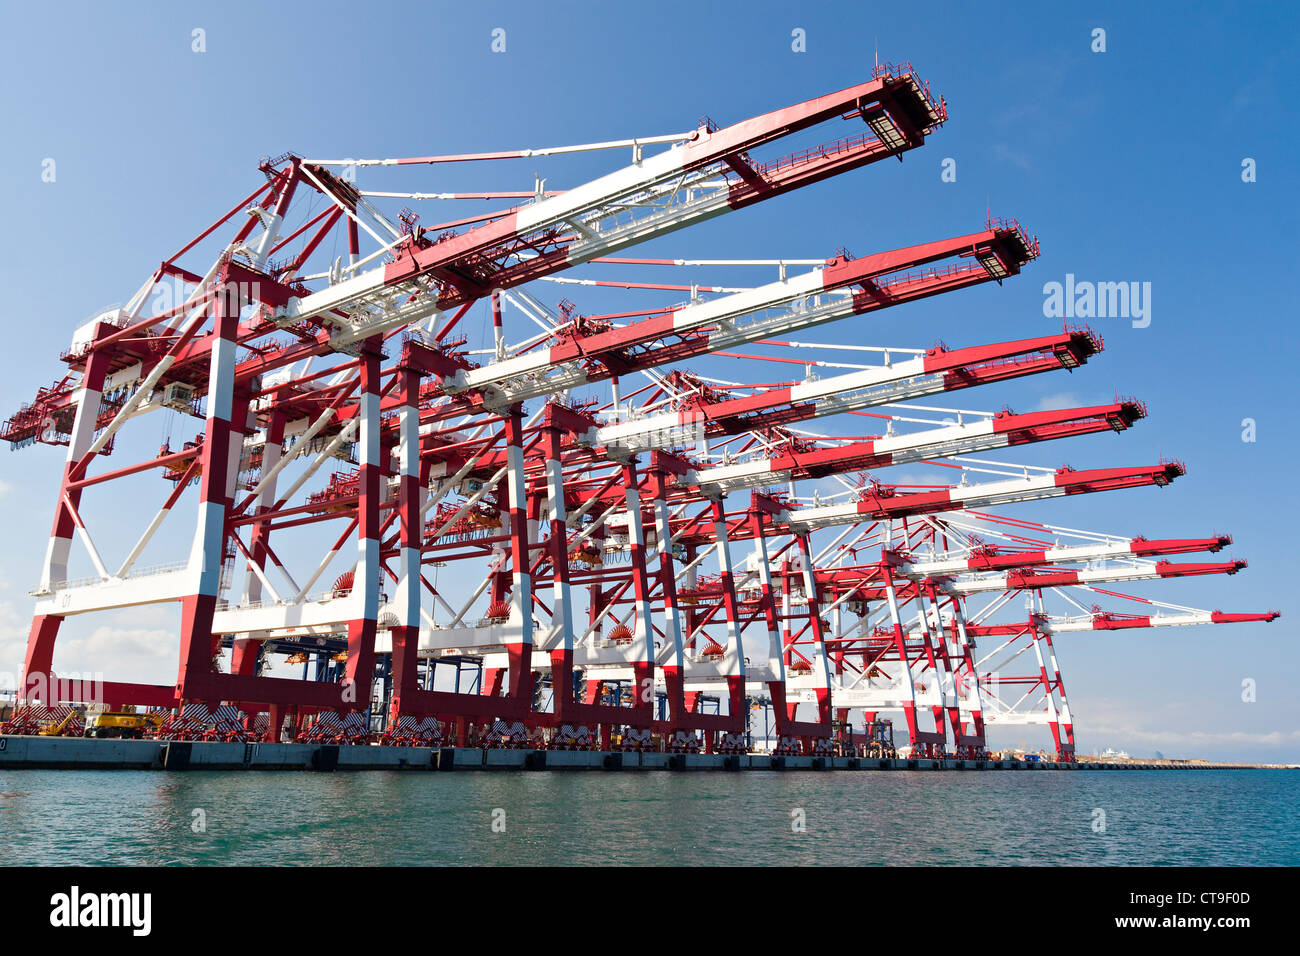 Cargo Cranes in Industrial Port - Stock Image